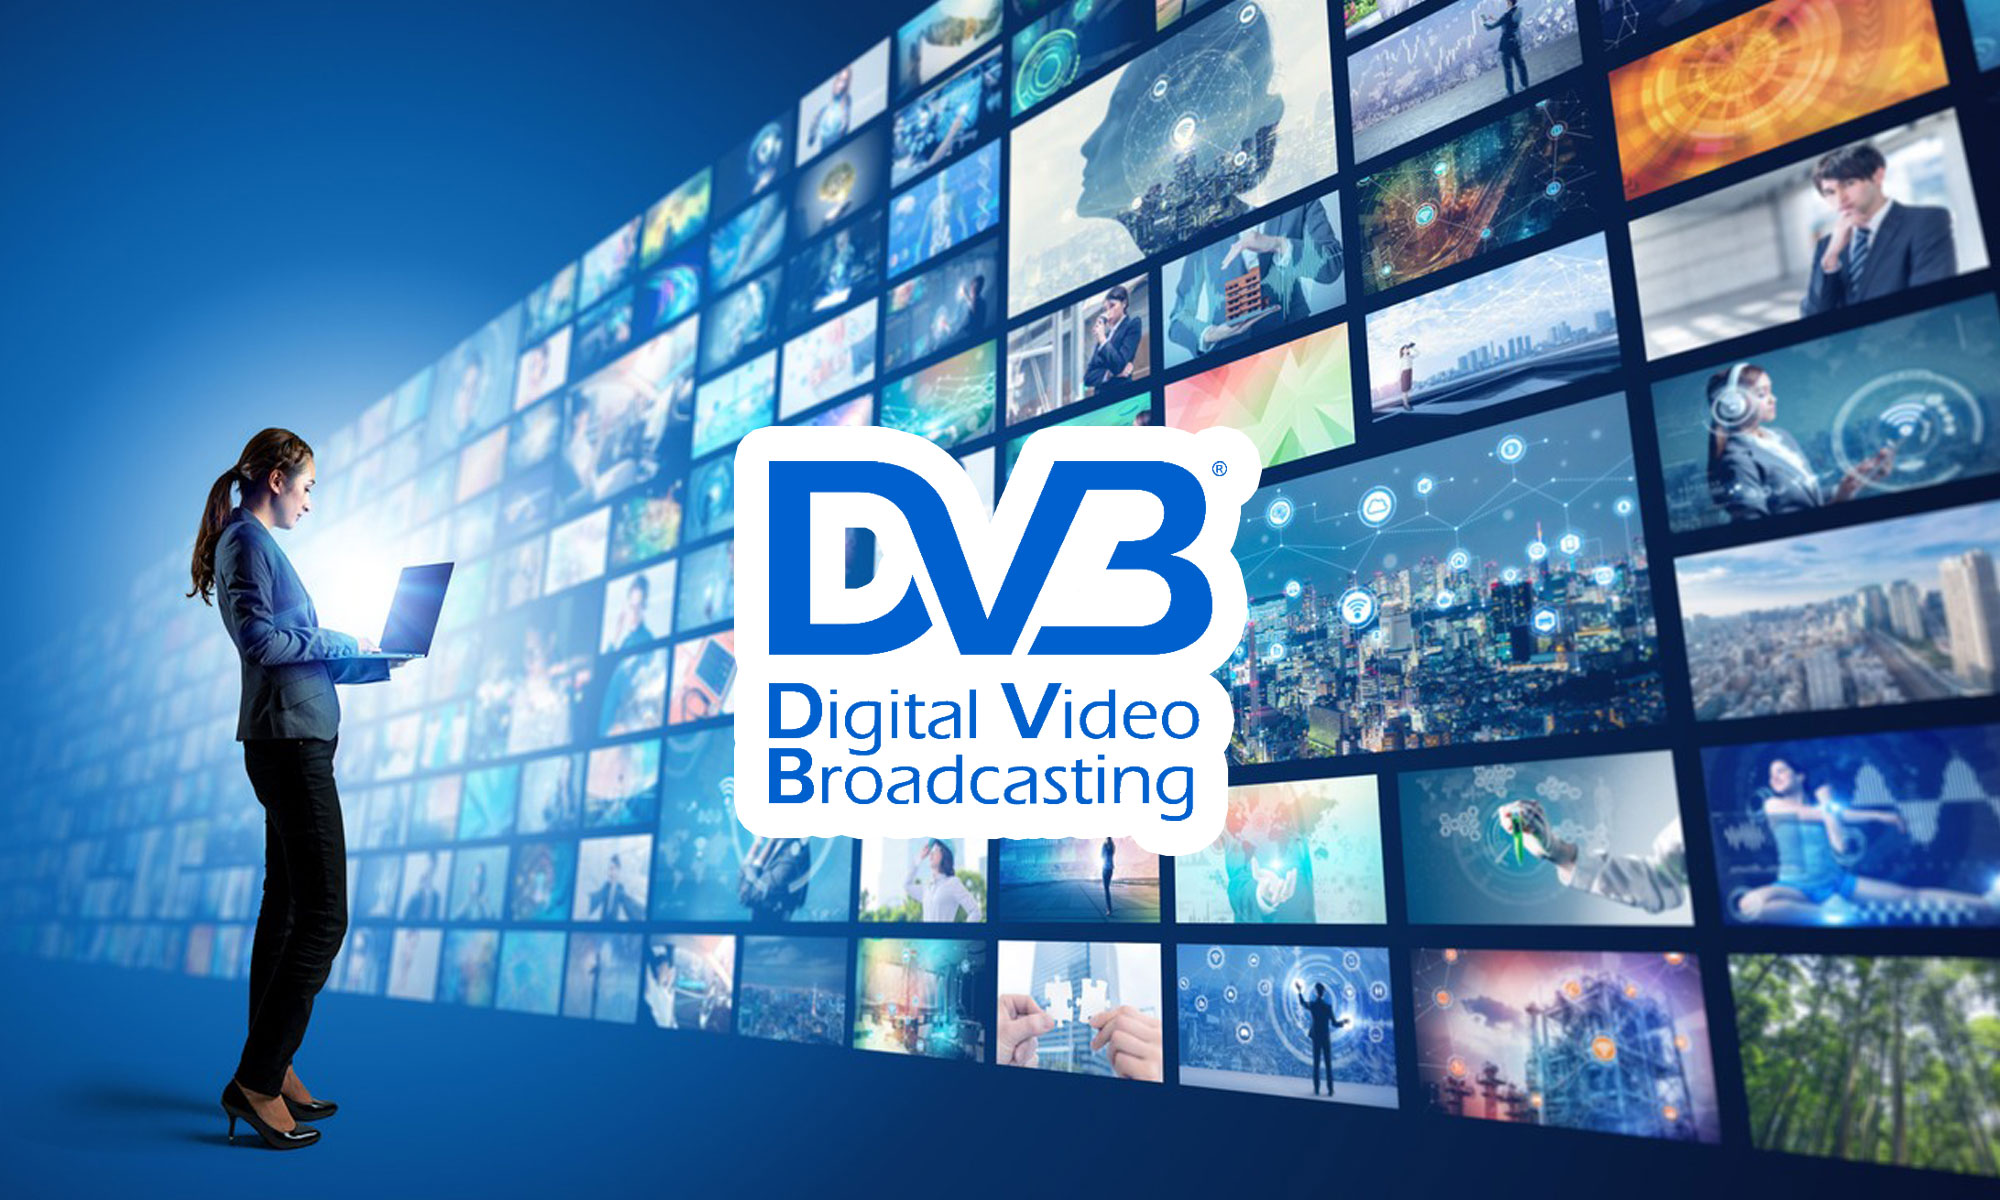 DVB / Digital Video Broadcasting